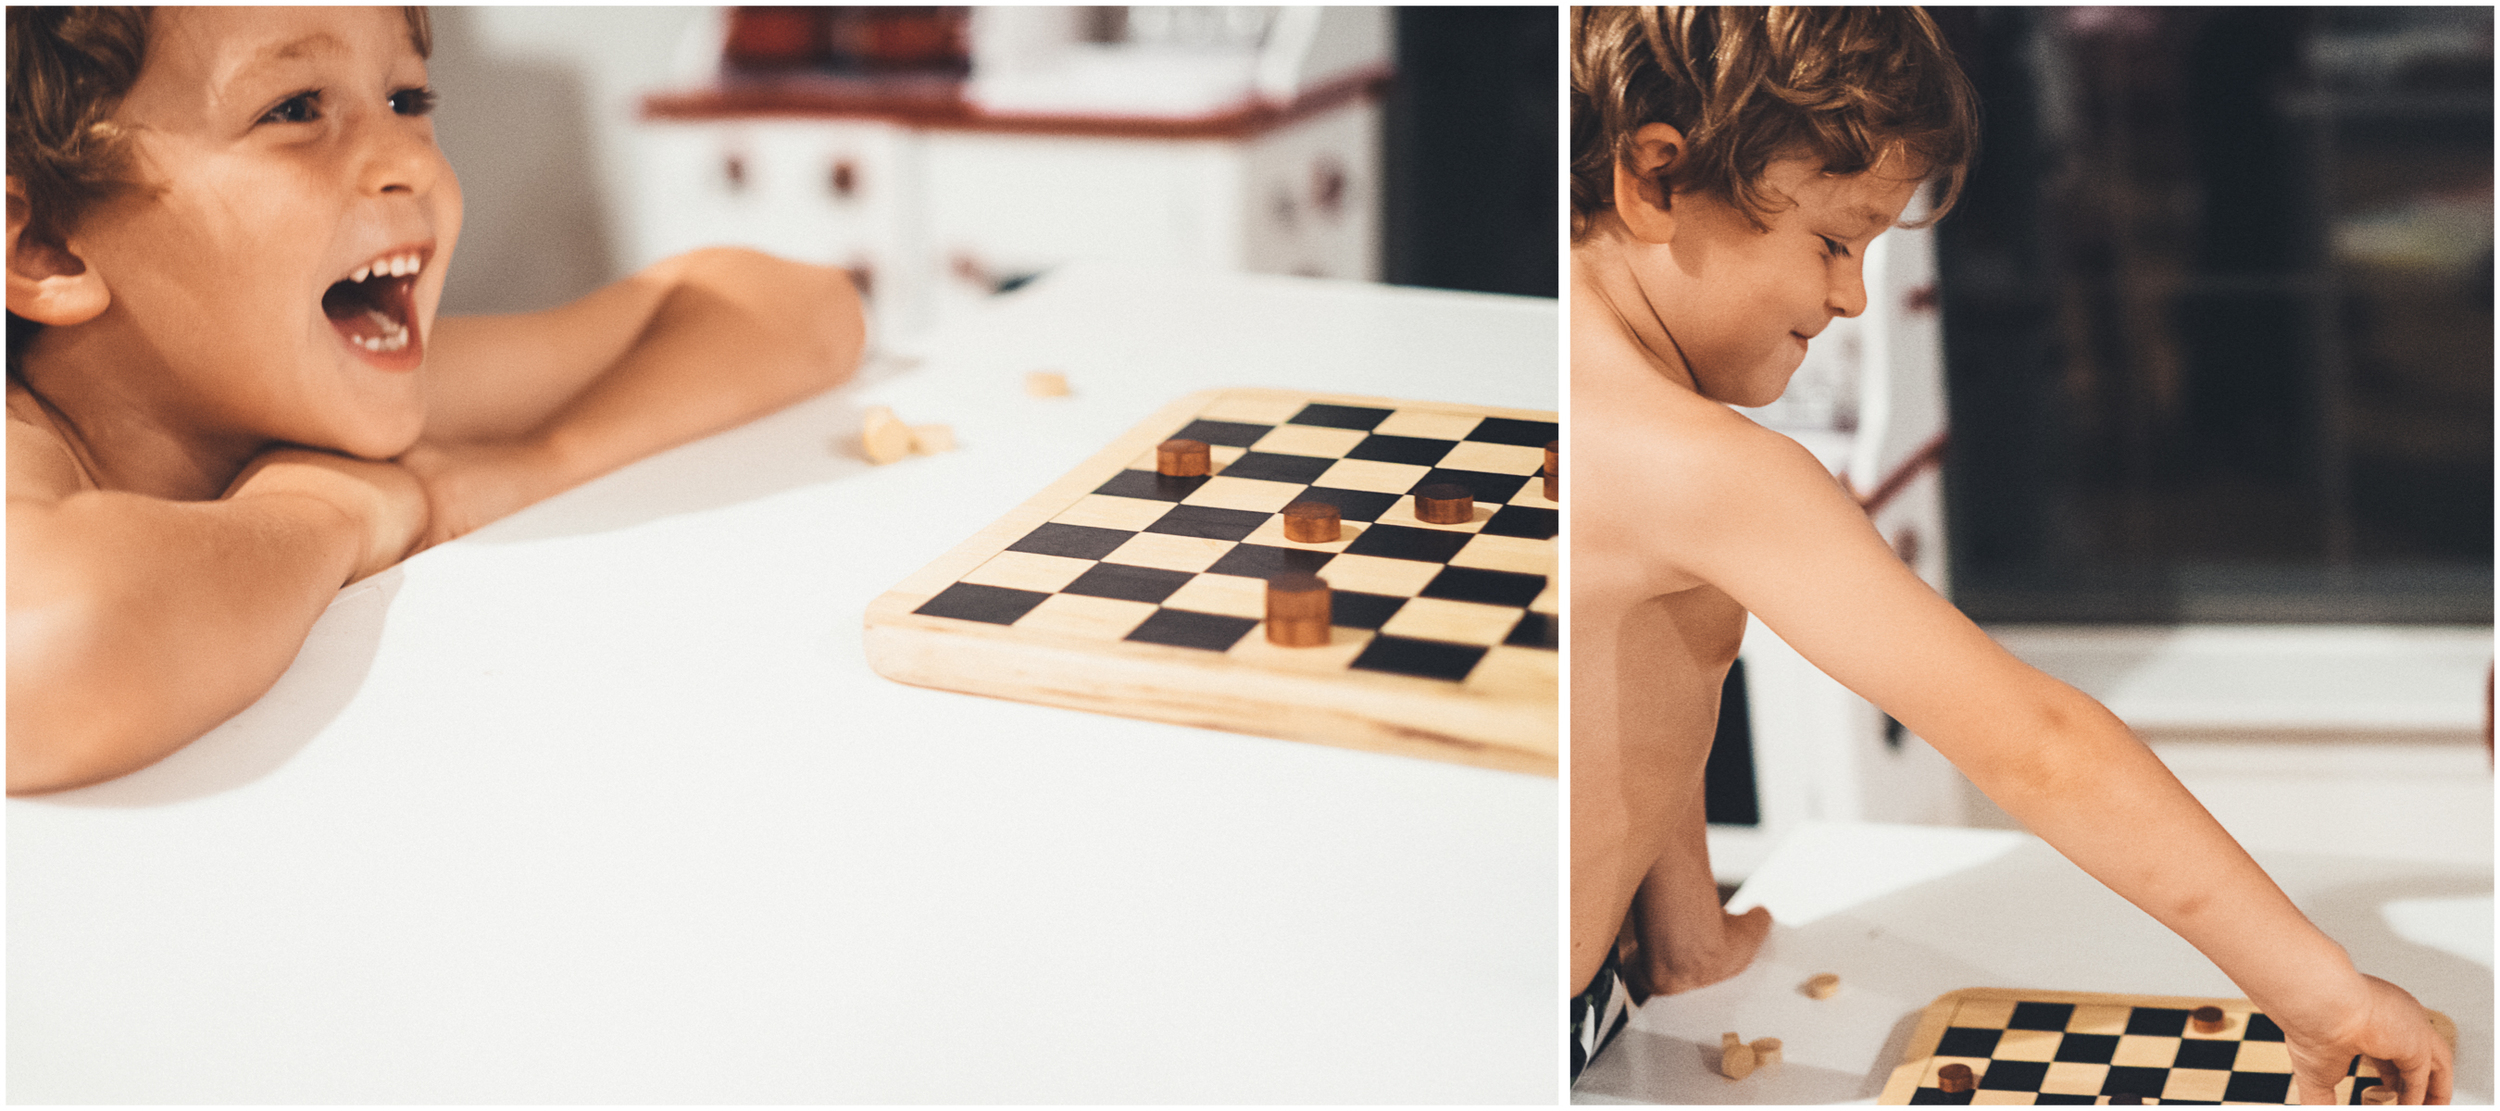 Our Checkers dynamo.